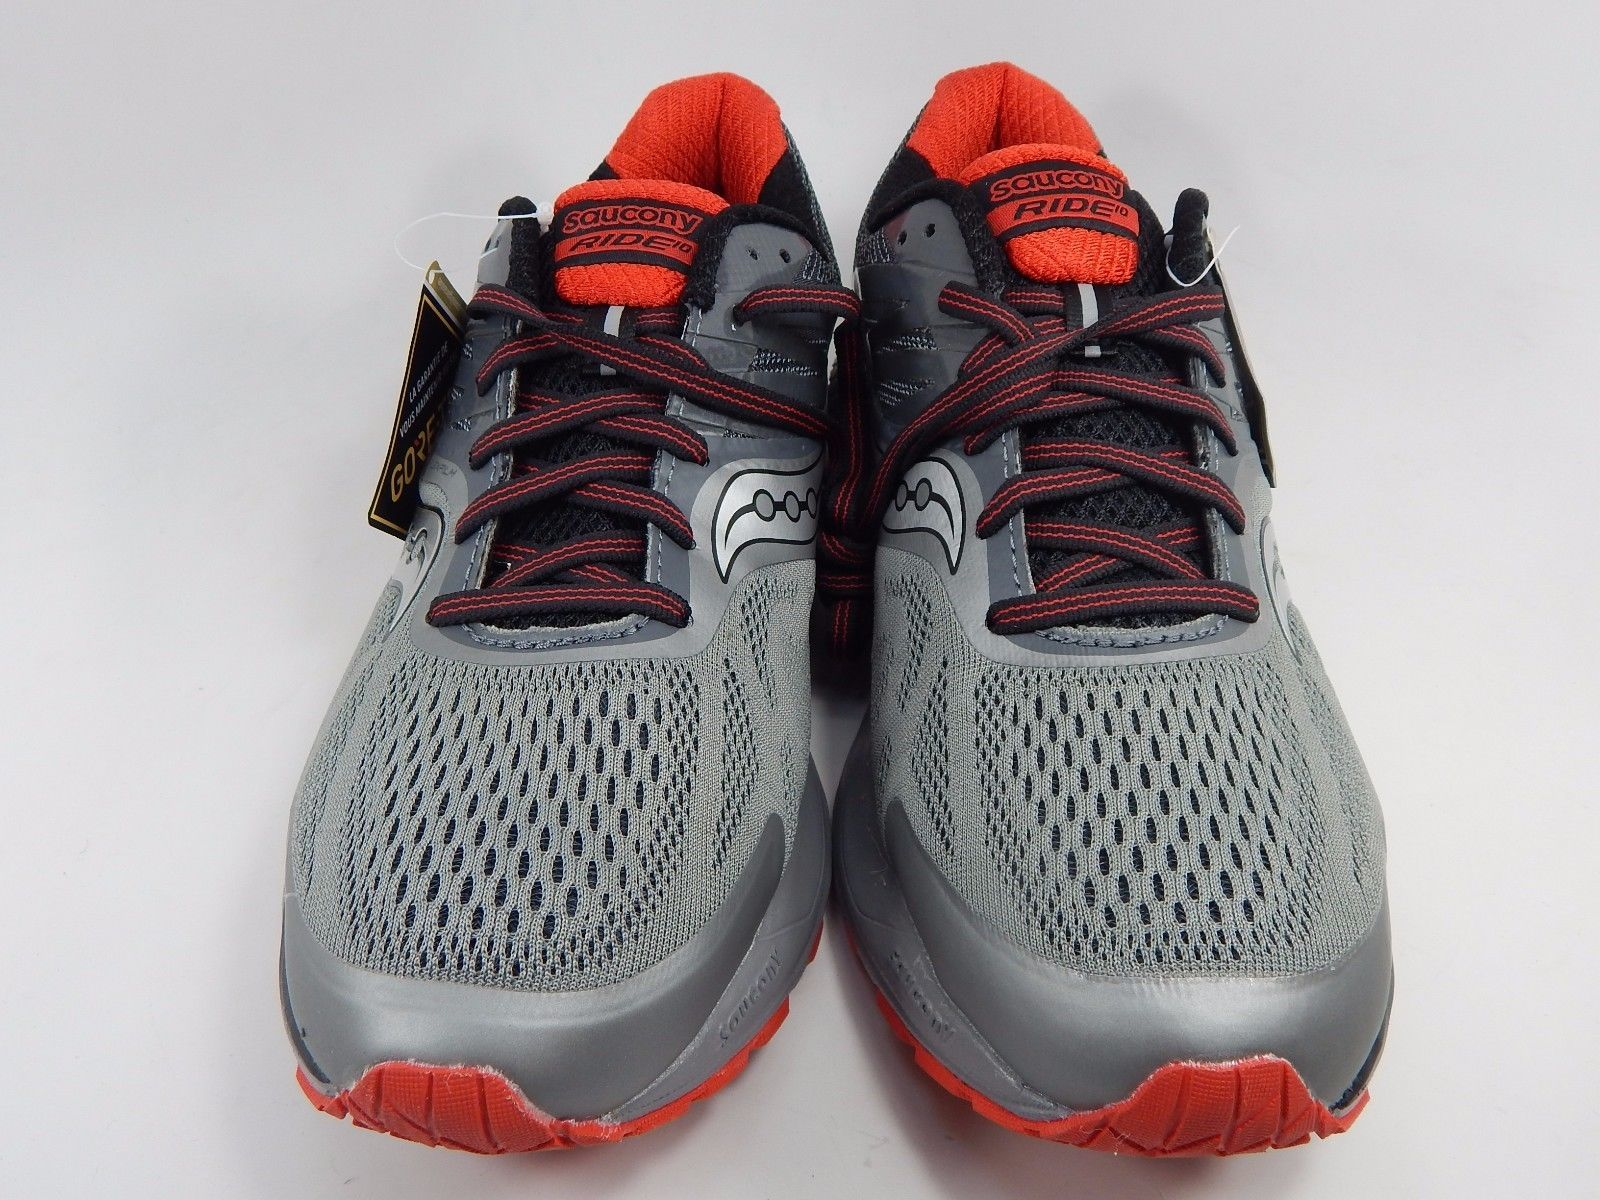 Saucony Ride 10 GTX Gore-Tex Men's Running Shoes Sz US 9 M (D) EU 42.5 S20396-1